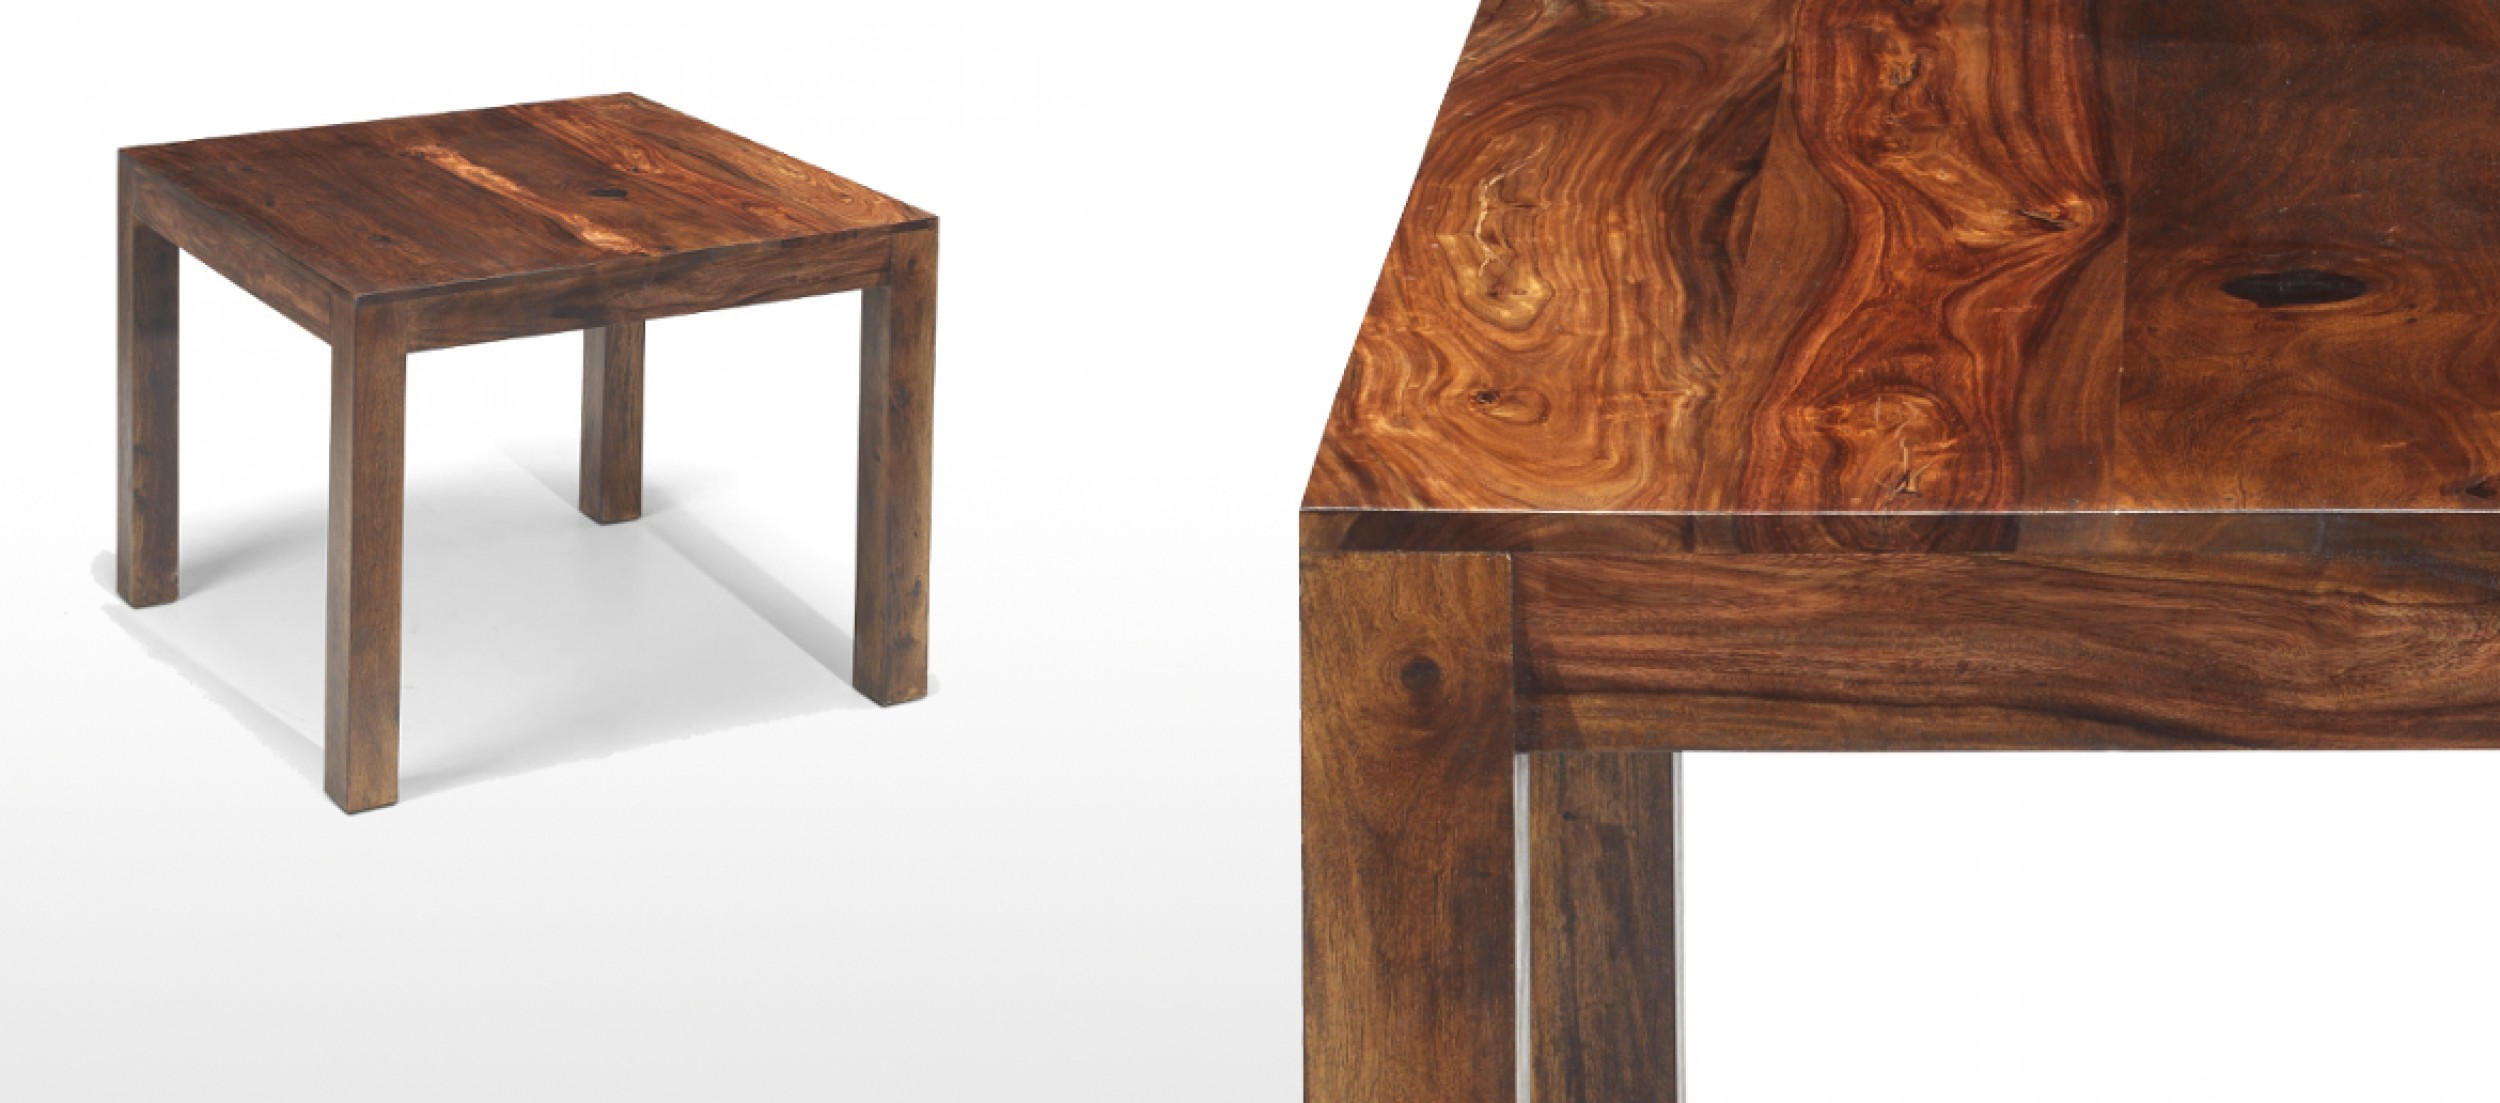 Cube sheesham 90 cm dining table quercus living for Sheesham dining table